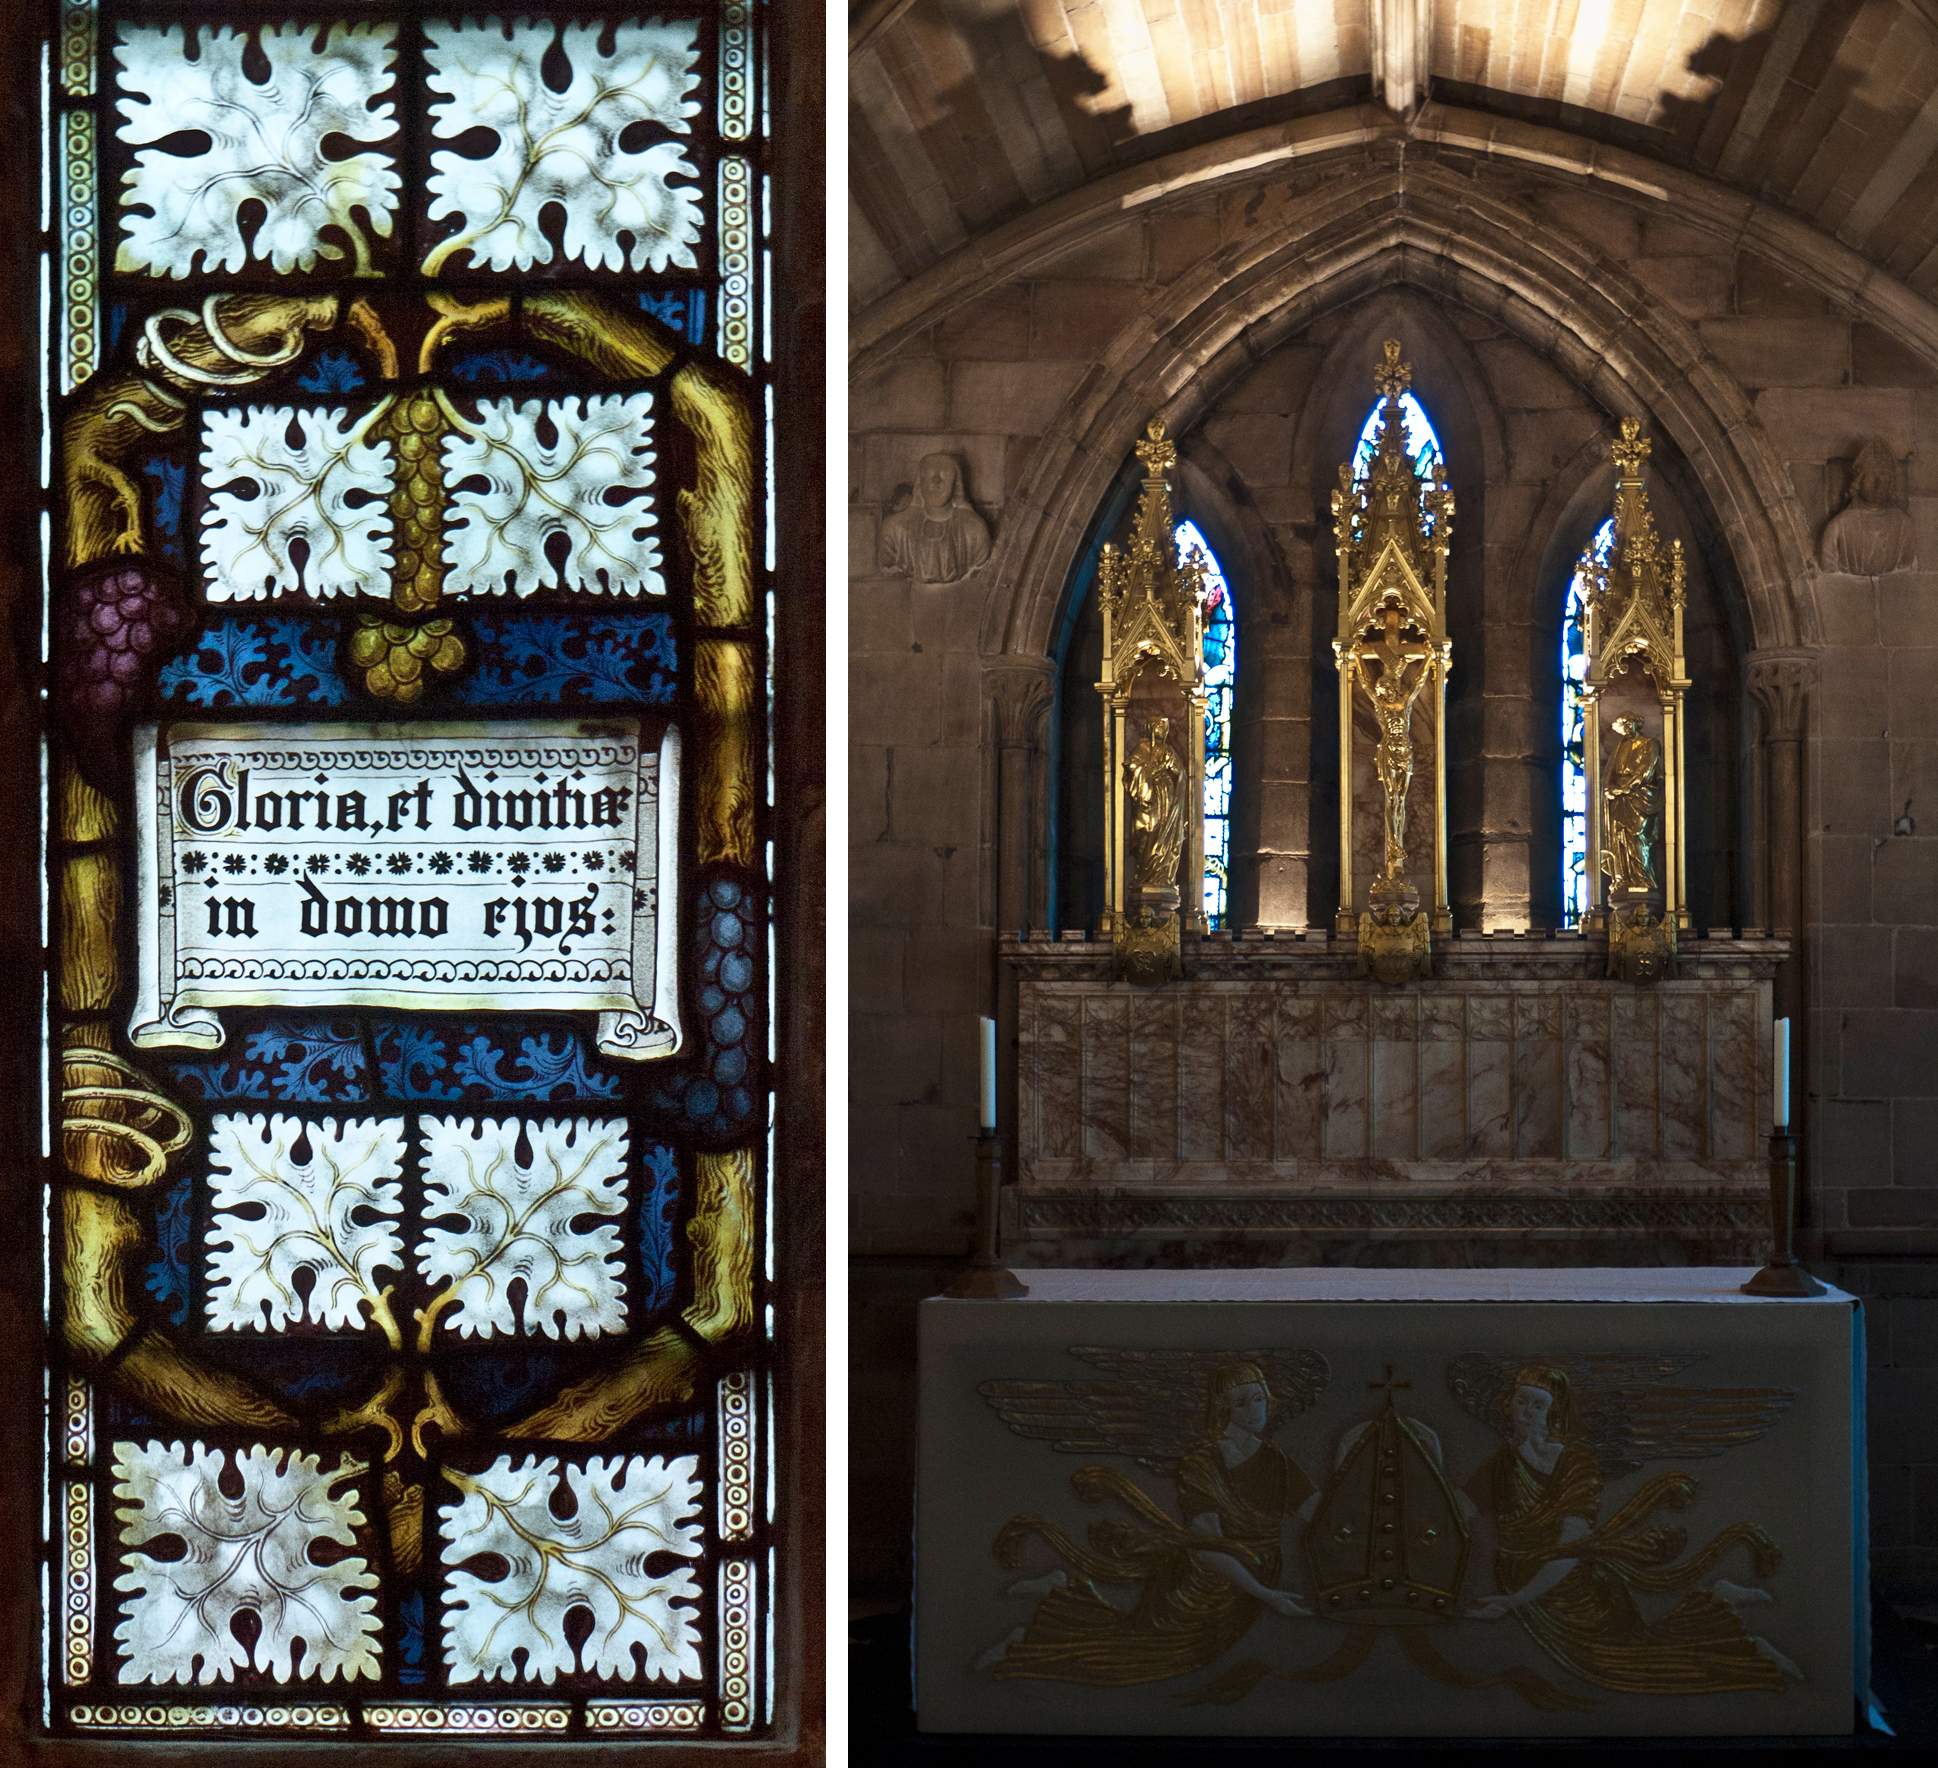 Left: detail of window with vine and texts. Right: altar and windows hidden behind reredos